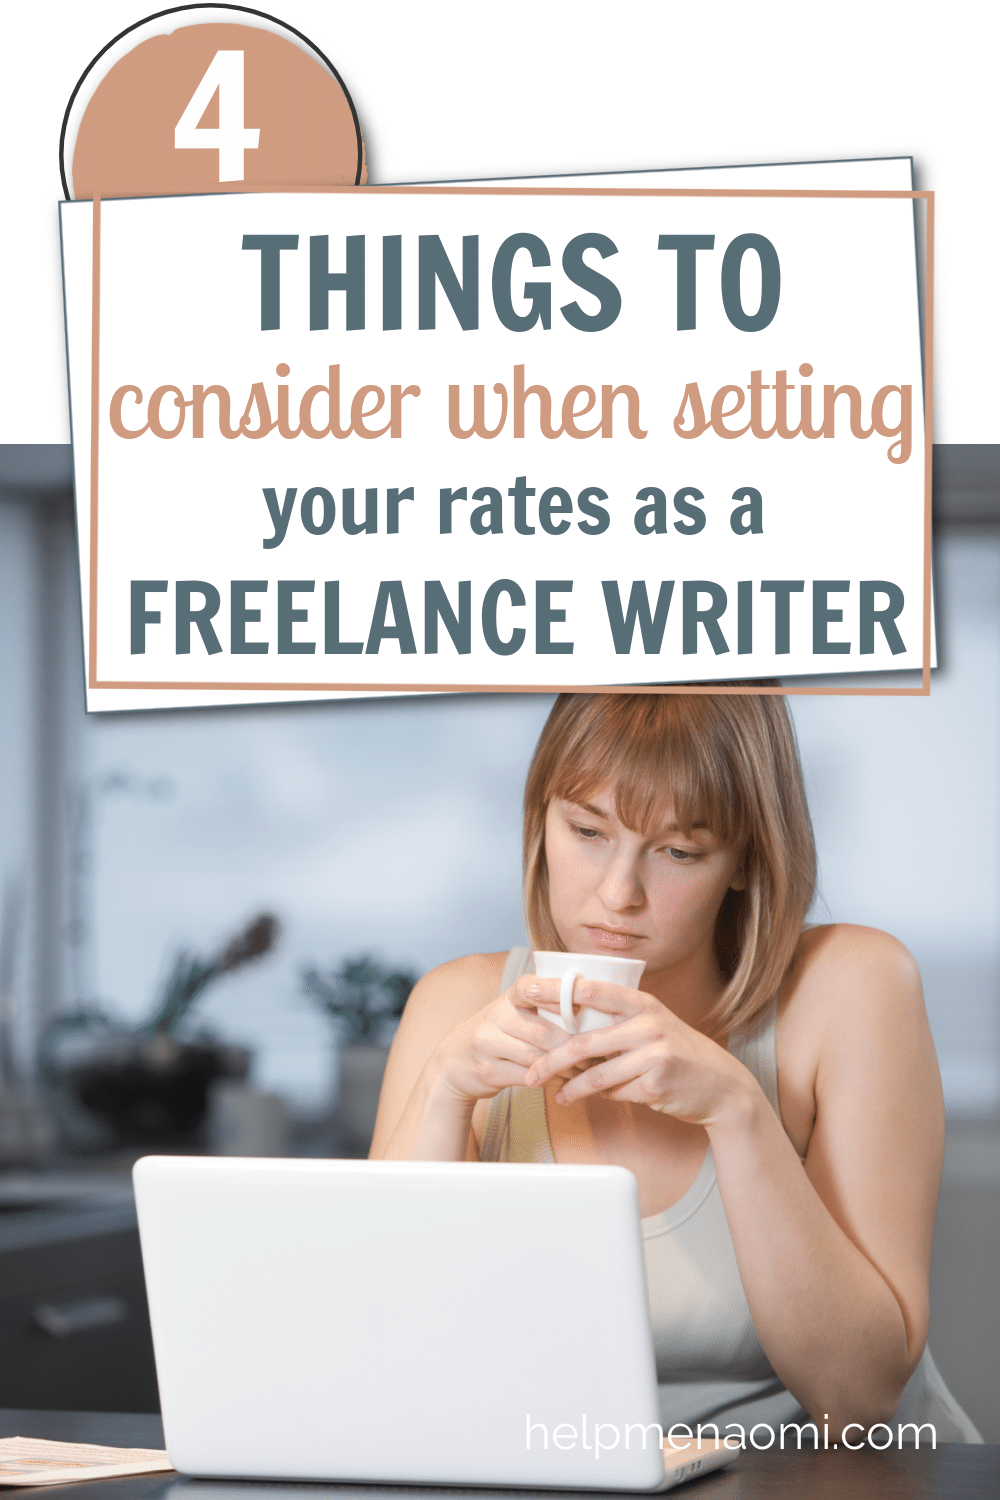 """Lady sitting in front of her laptop while holding a cup of coffee and thinking under the words """"4 Things to Consider When Setting Your Rates as a Freelance Writer"""""""